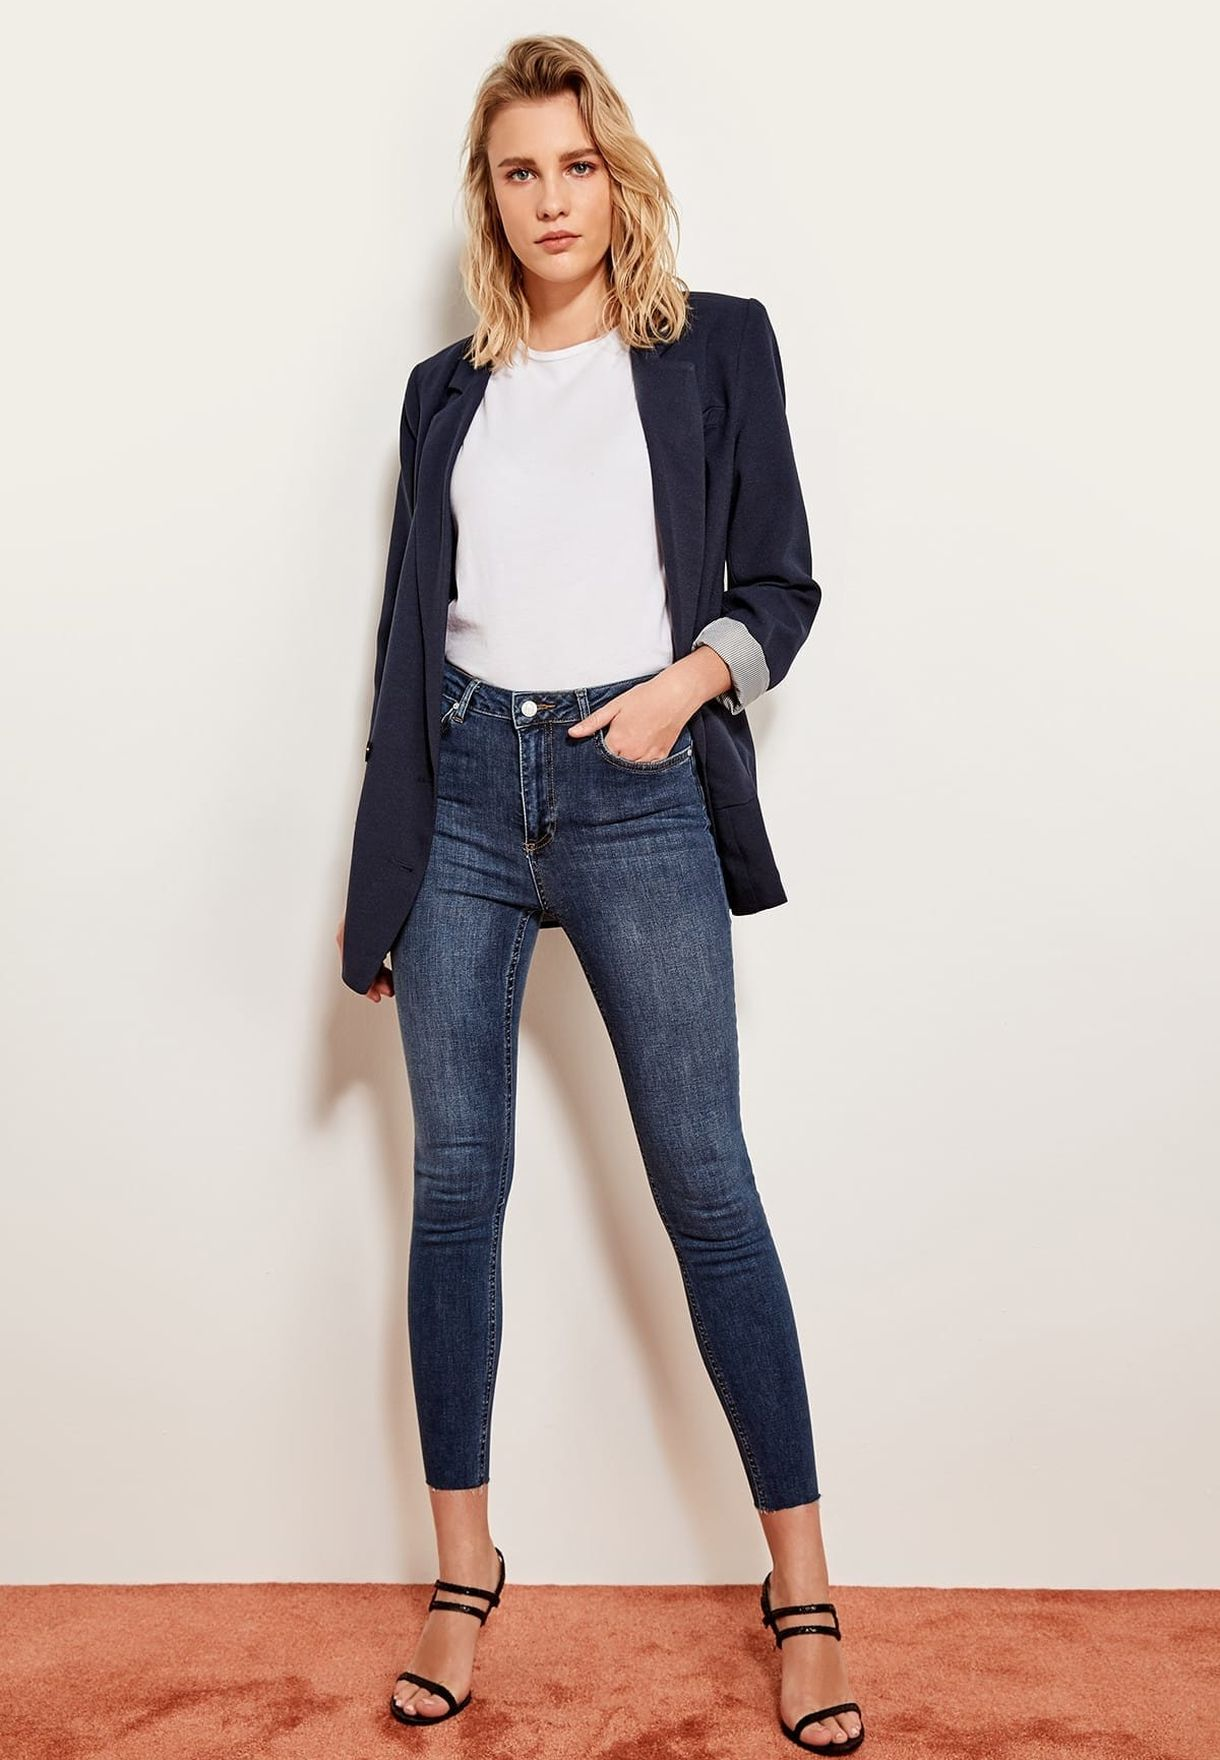 Cut- Out High Waist Skinny Jeans